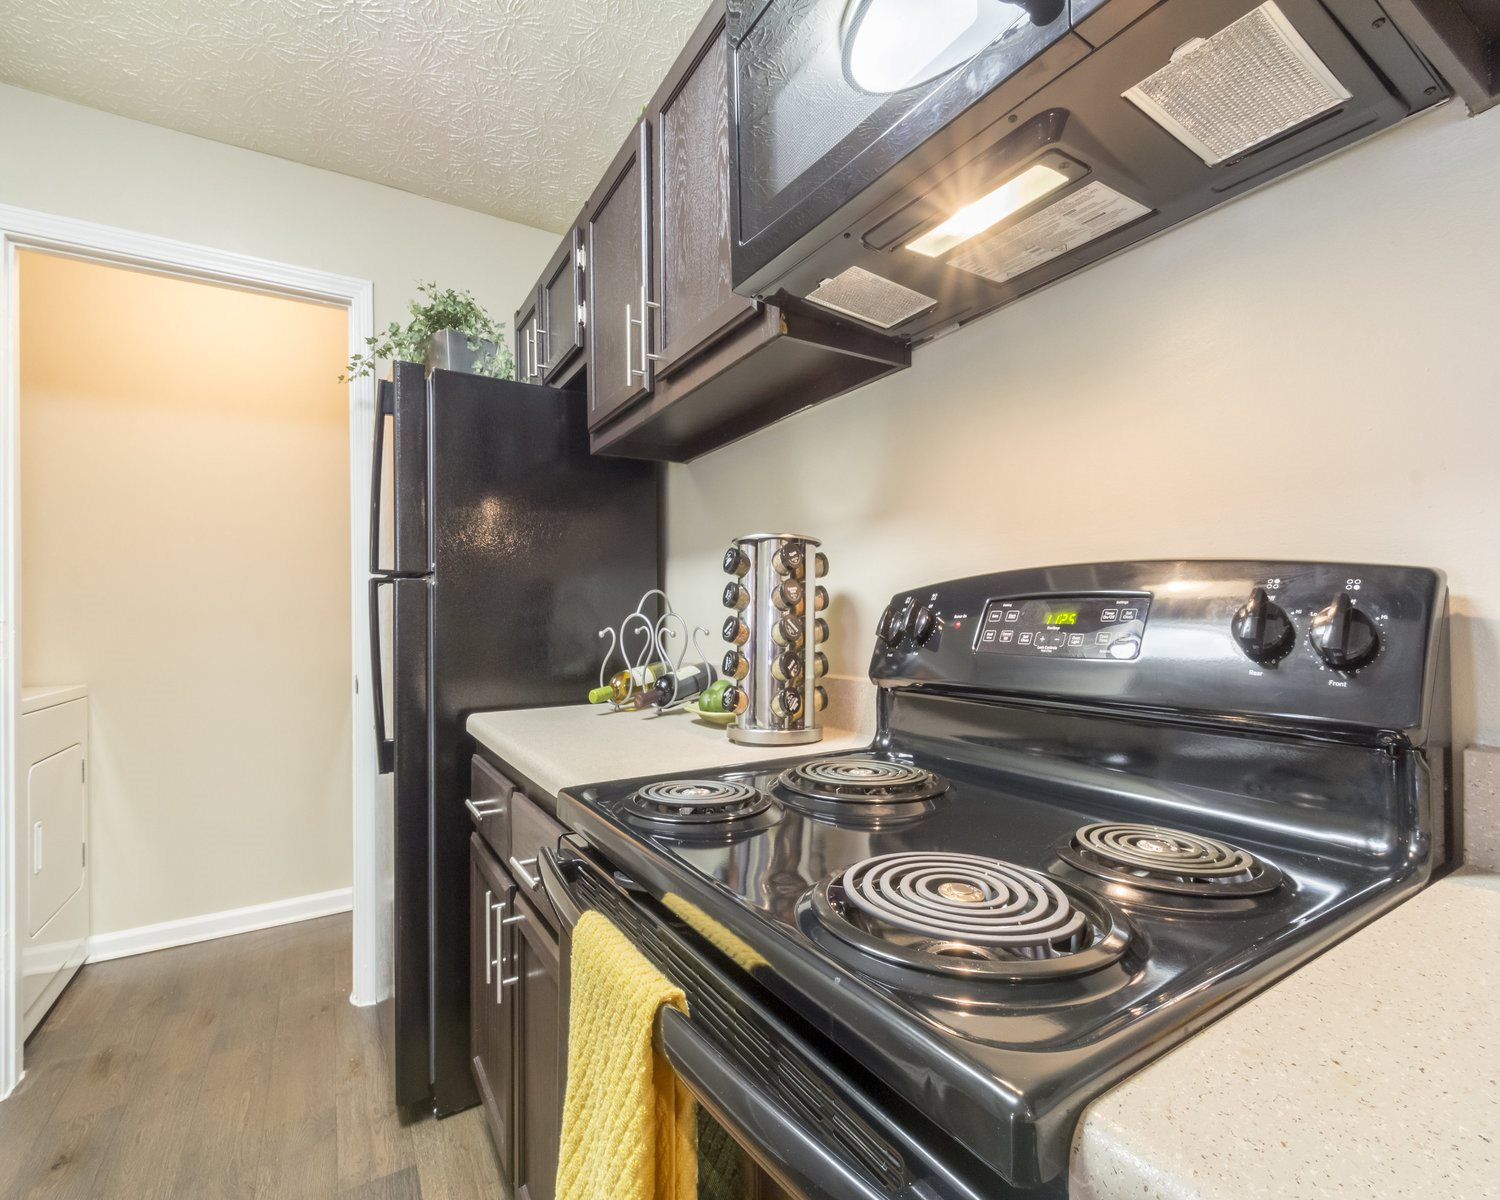 Whirpool Appliances, furnished kitchens